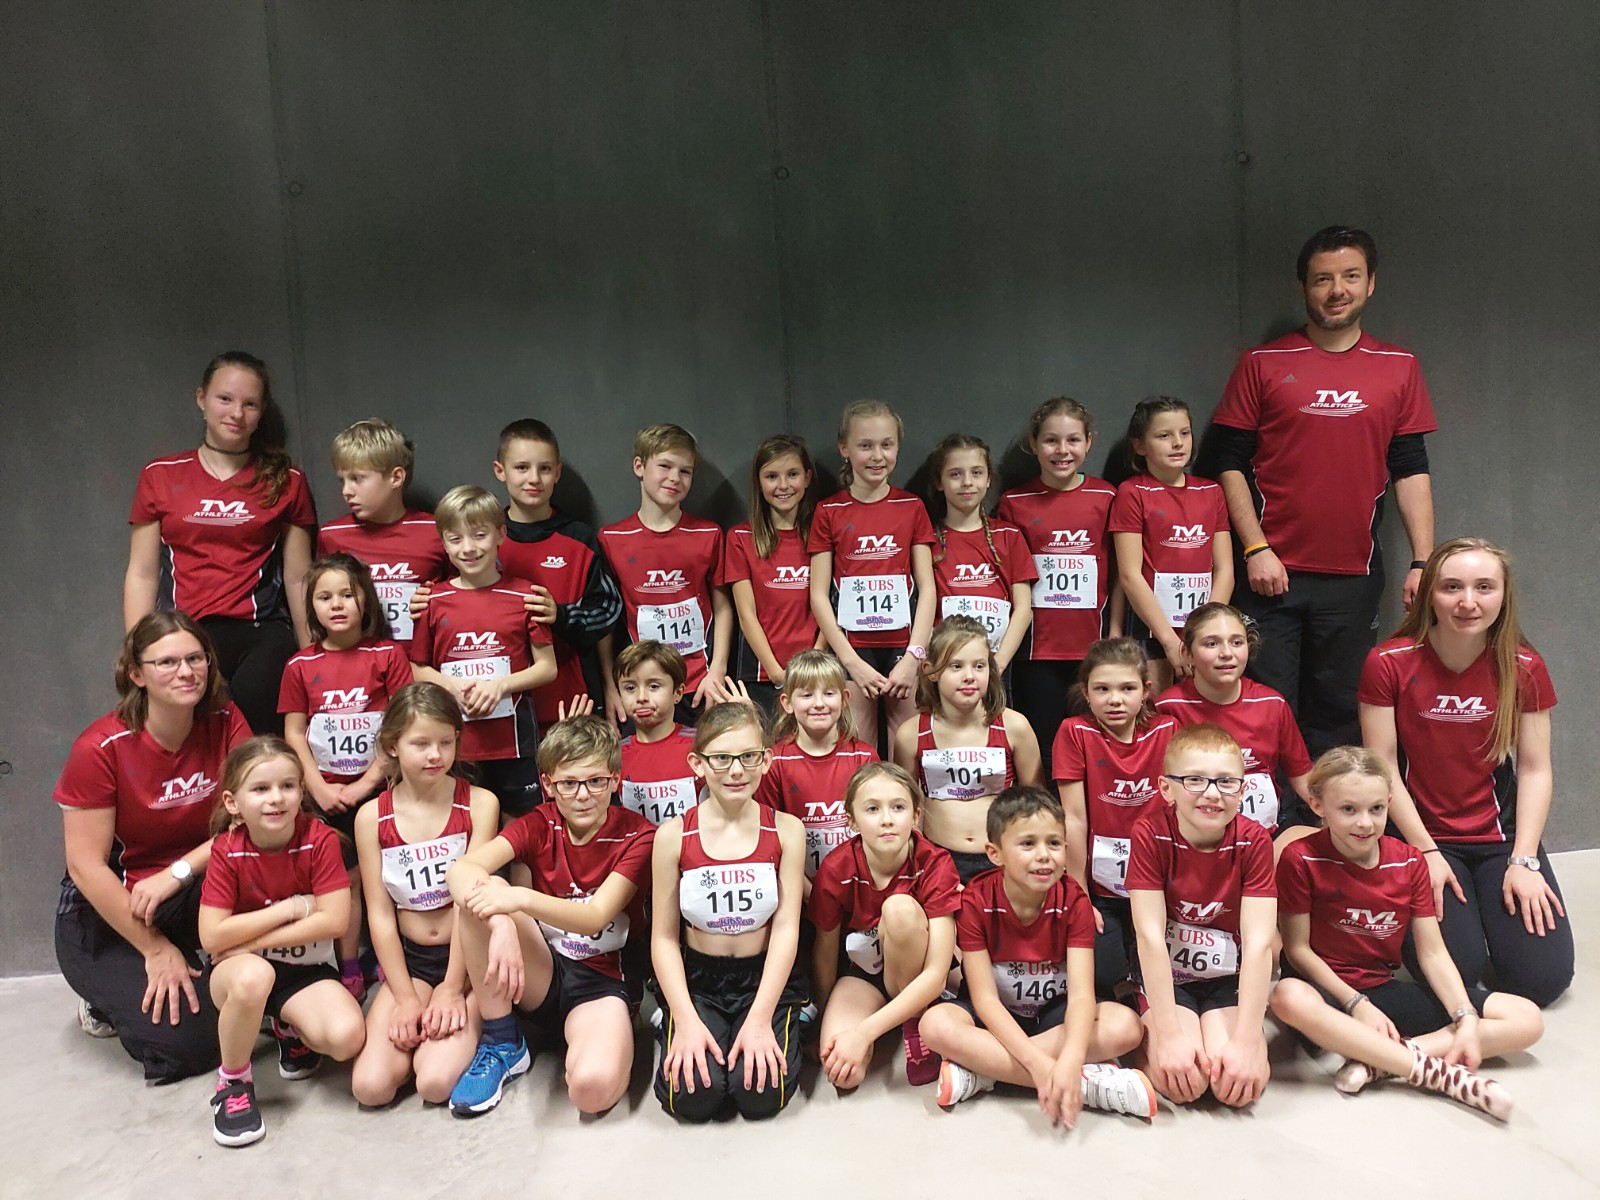 Grossaufgebot am UBS Kids Cup Team in Bern